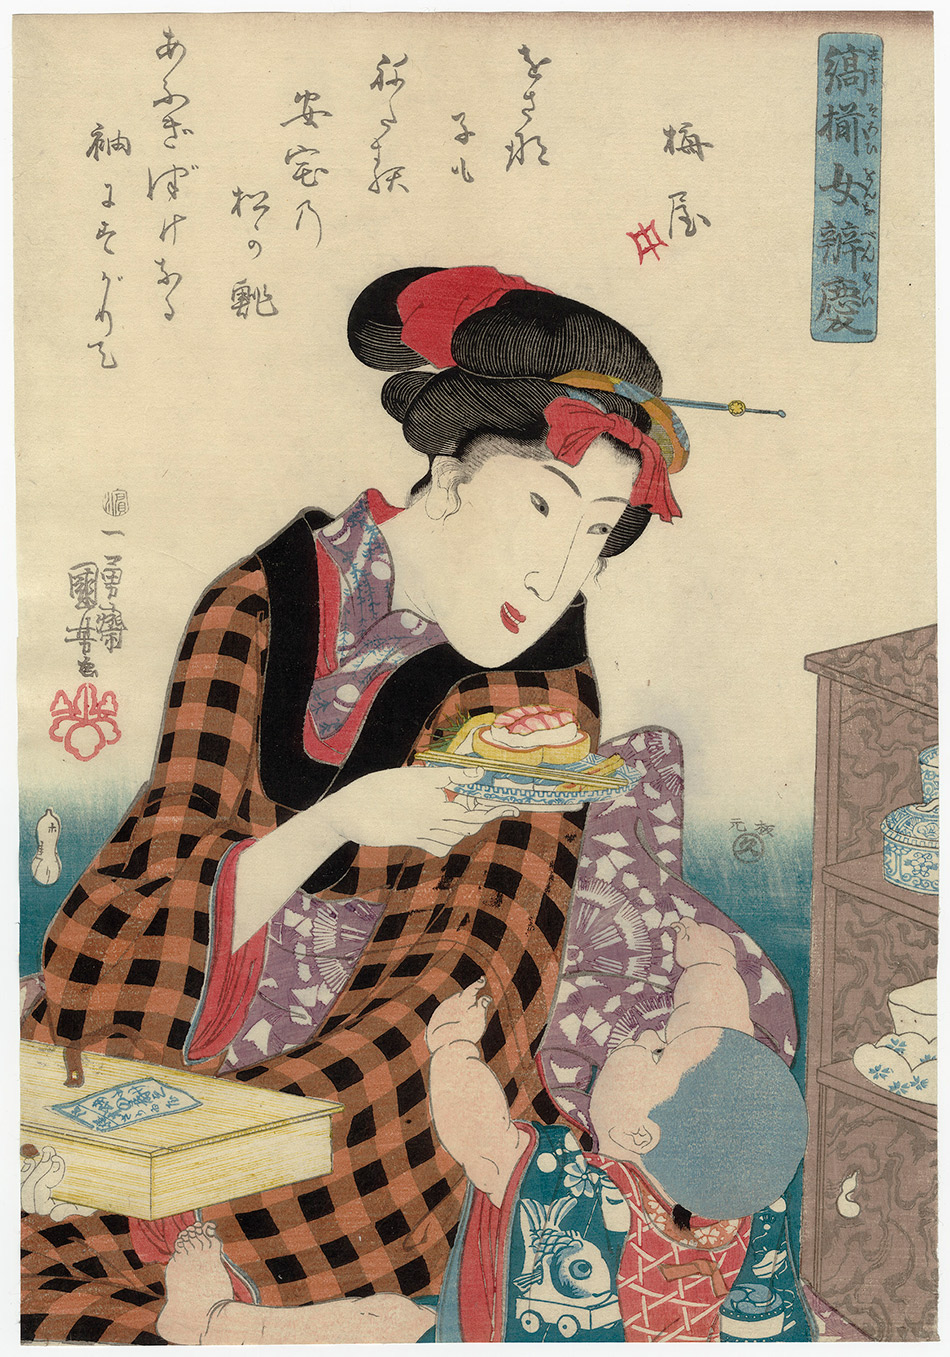 museum-of-fine-arts-boston_06.-Takeout-Sushi-Suggesting-Ataka_Utagawa-Kuniyoshi_w